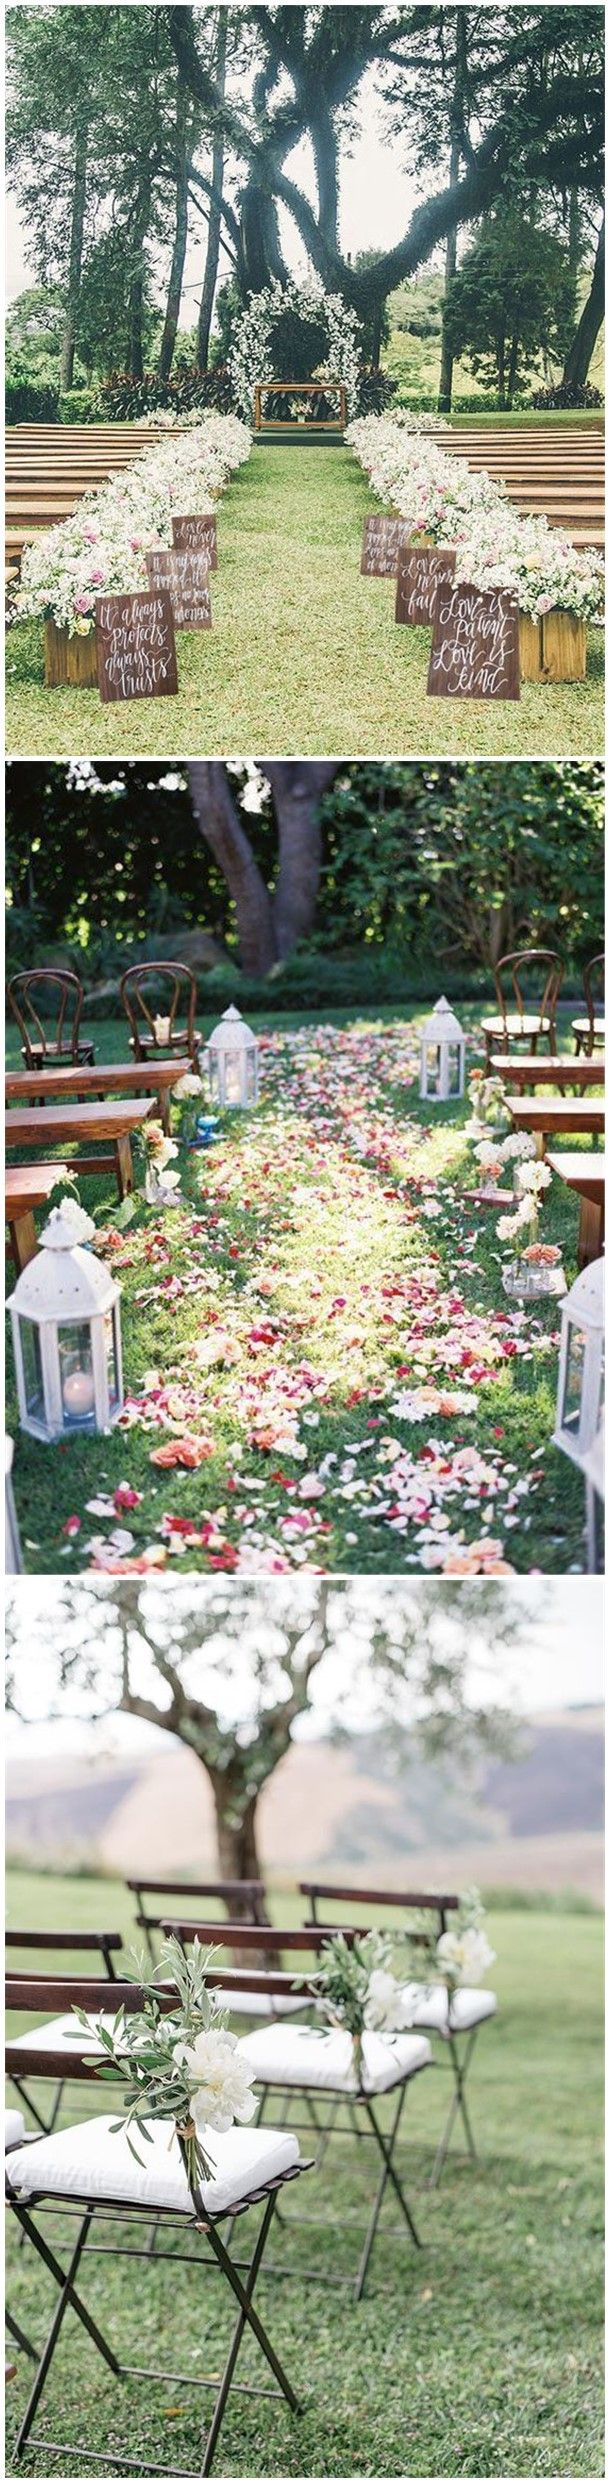 Outdoor garden wedding decoration ideas   Rustic Outdoor Wedding Ceremony Decorations Ideas  Rustic